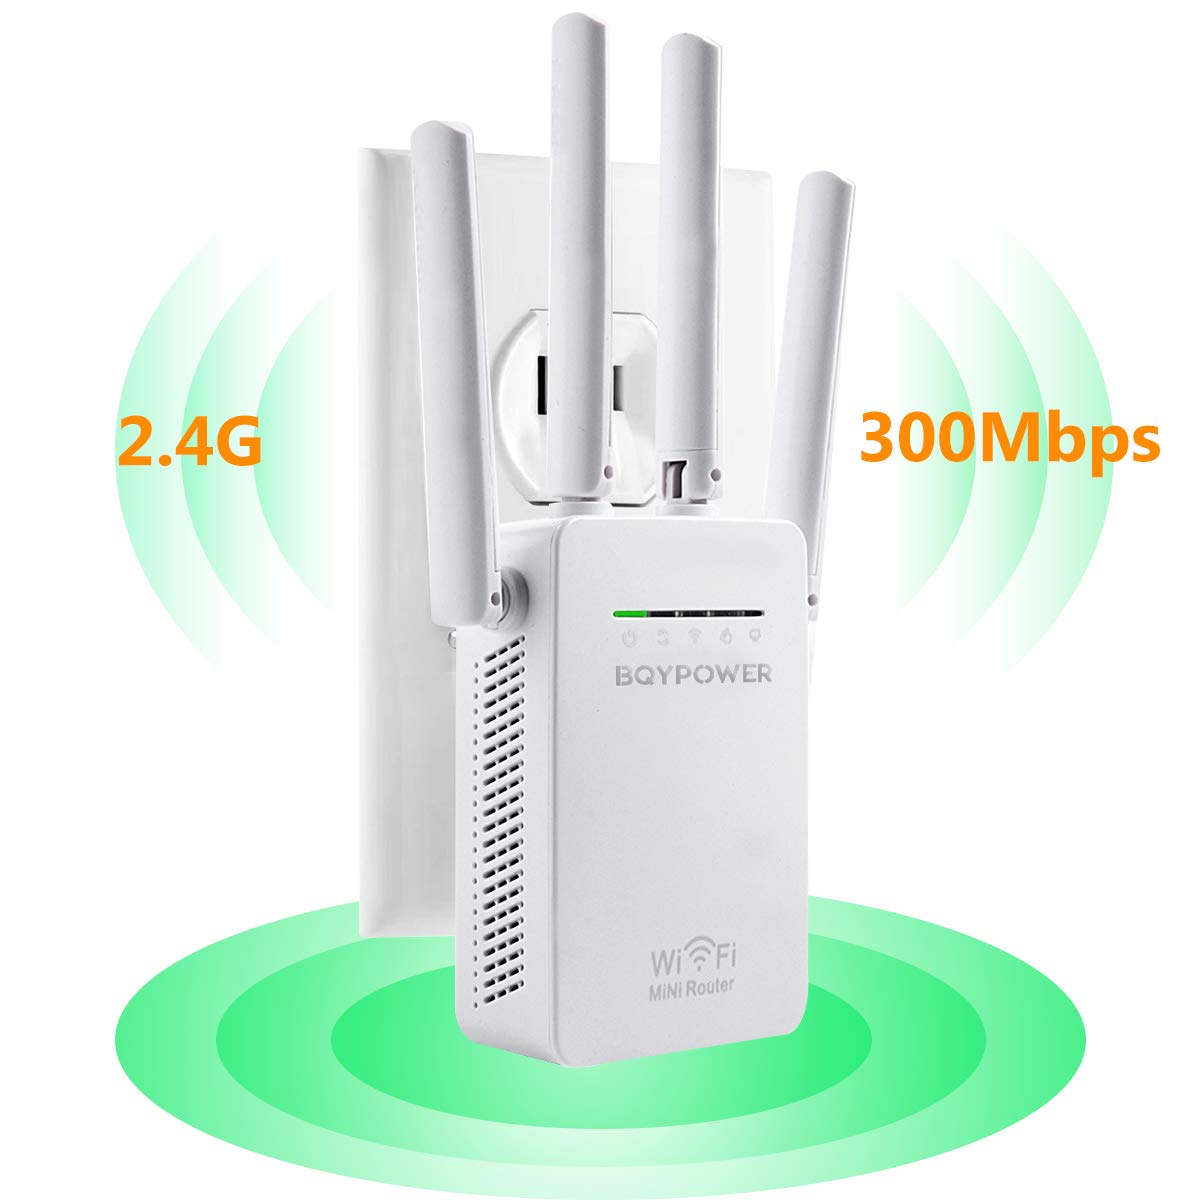 Newest 2018 WiFi Extender Internet Booster Signal Extenders Wireless Repeater 2.4GHz Dual Band up to 300 Mbps - Best Range Network Plug-in - 360 Degree Full Coverage - 1800 sq.ft/40 ft Range